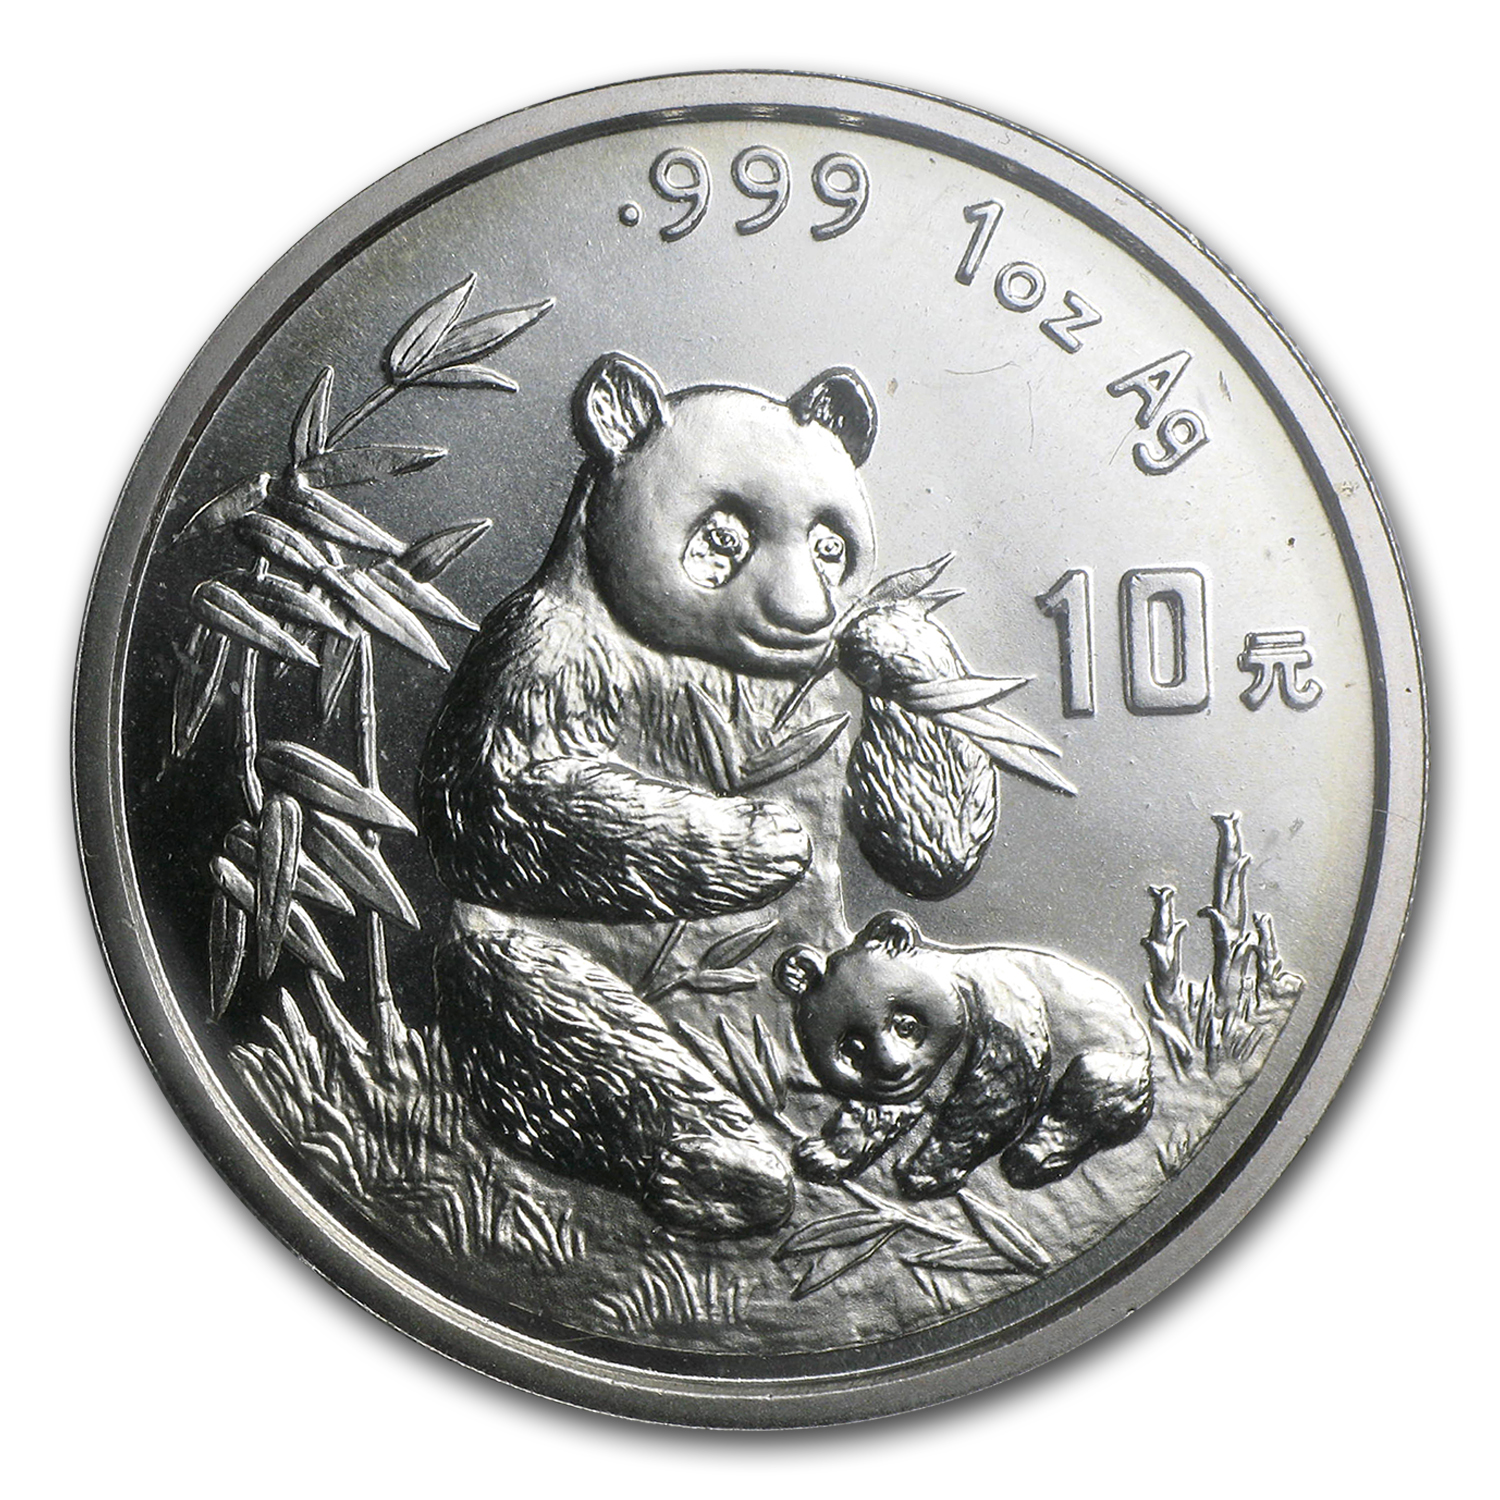 1996 1 oz Silver Chinese Panda - (Sealed) - Large Date